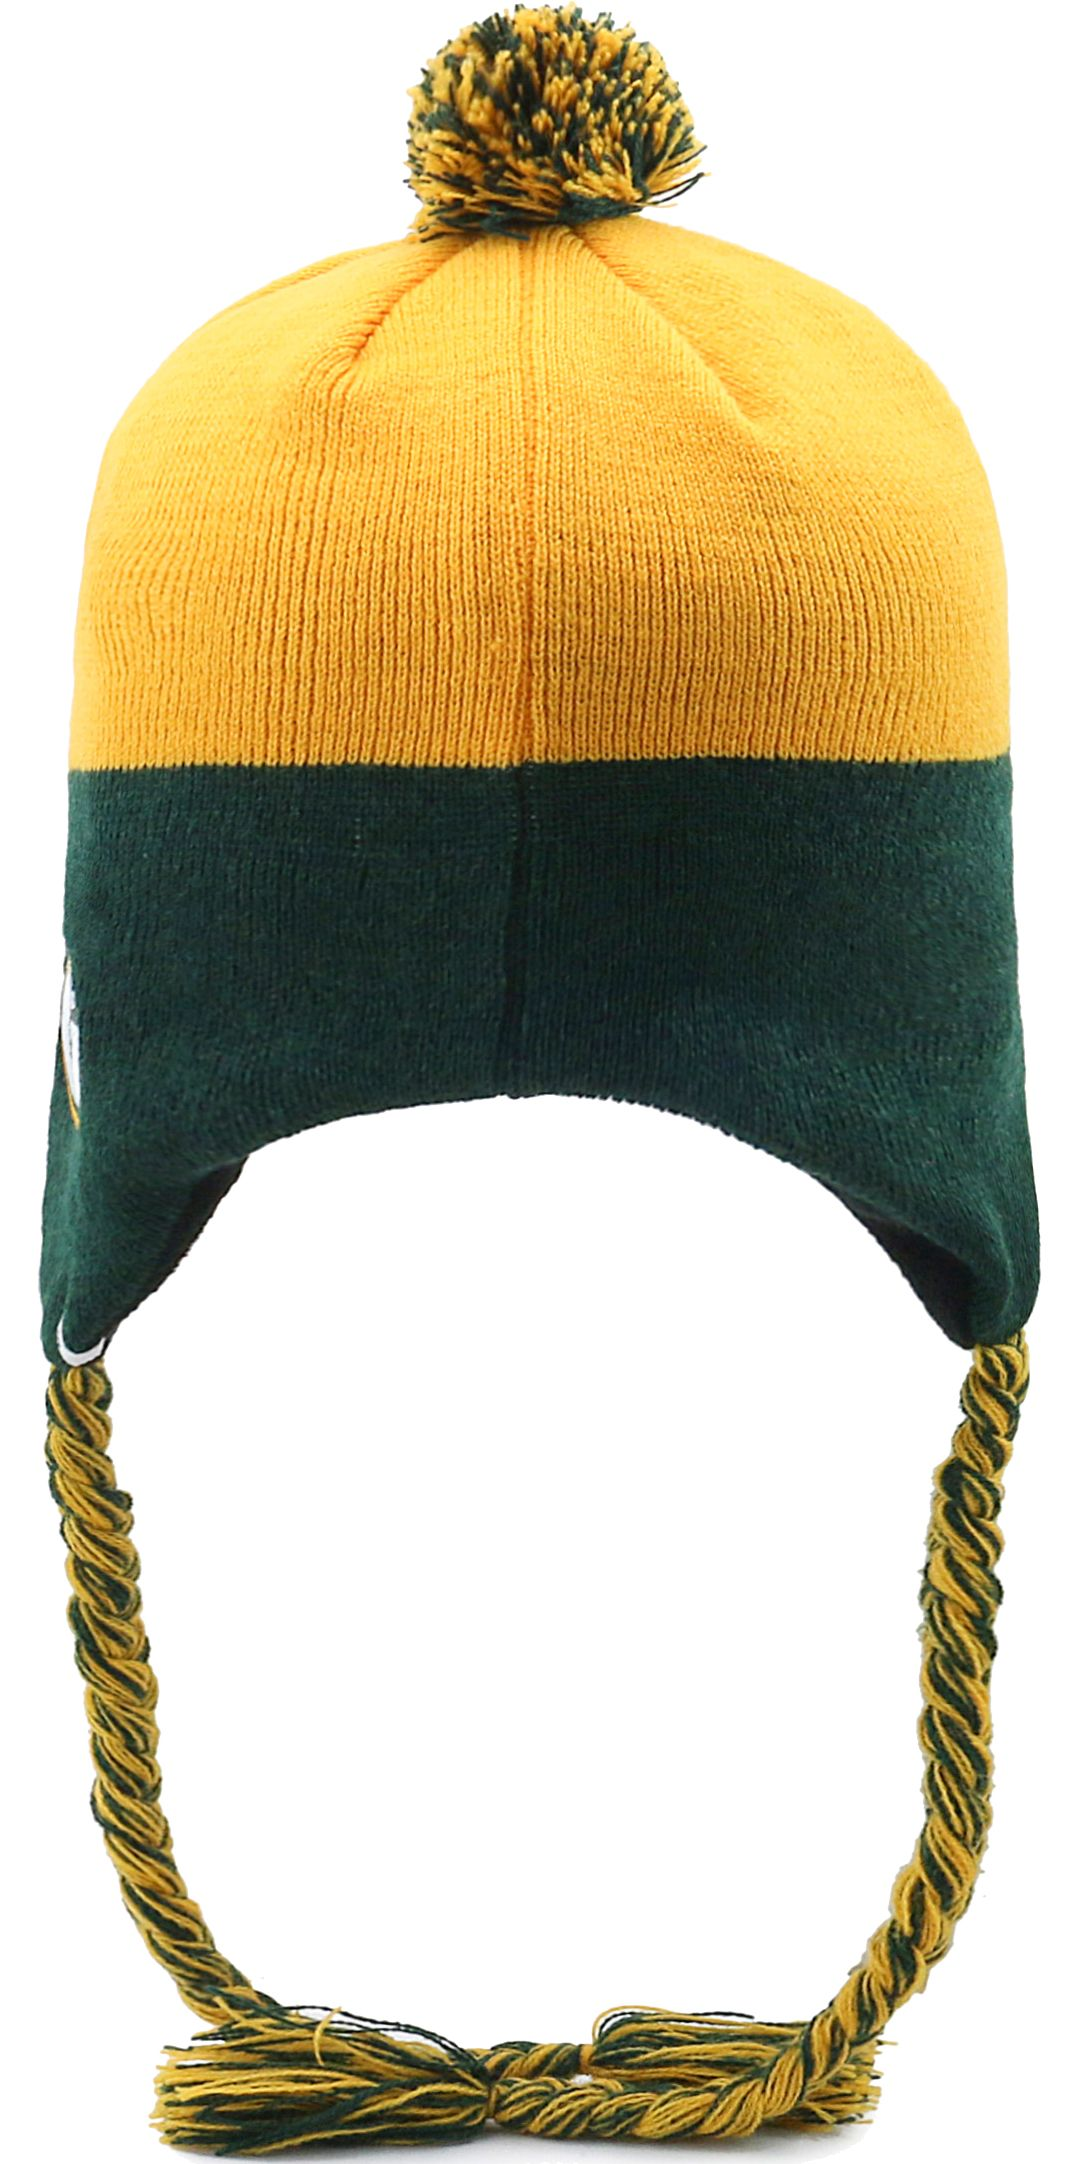 0e0c99b0 '47 Youth Green Bay Packers Hammerhead Gold Knit Trapper